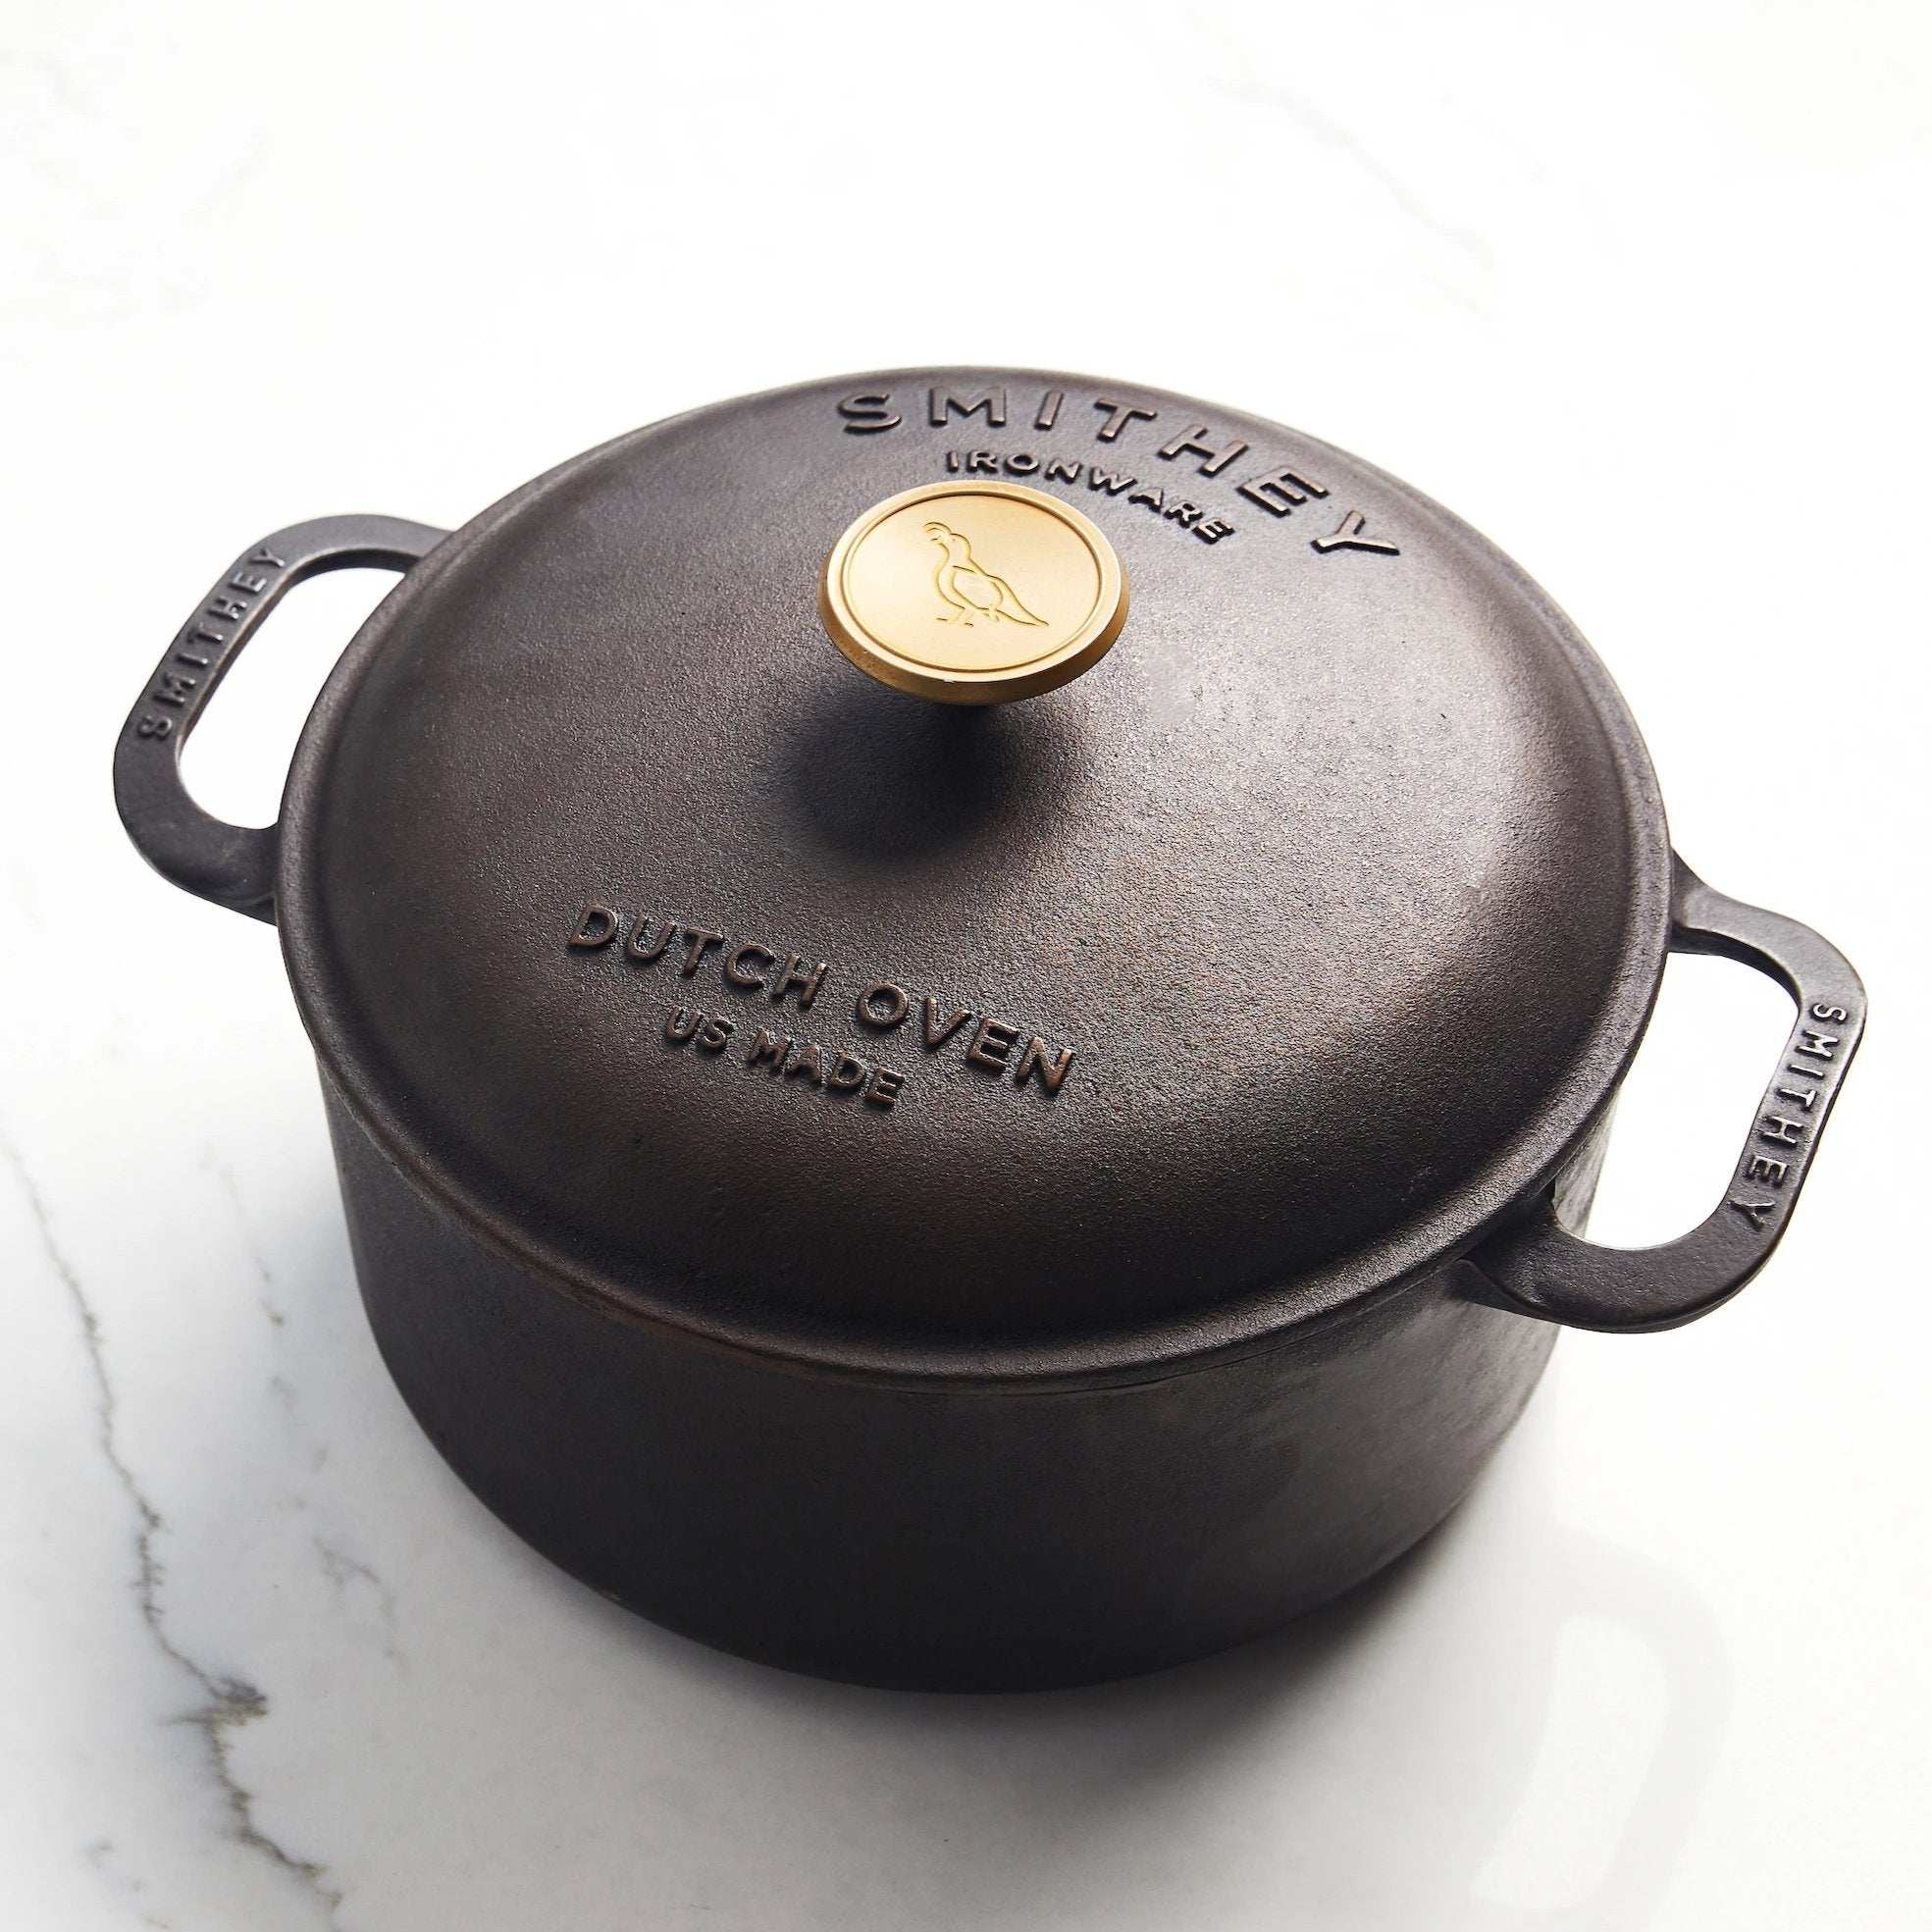 Smithey Cast Iron Dutch Oven